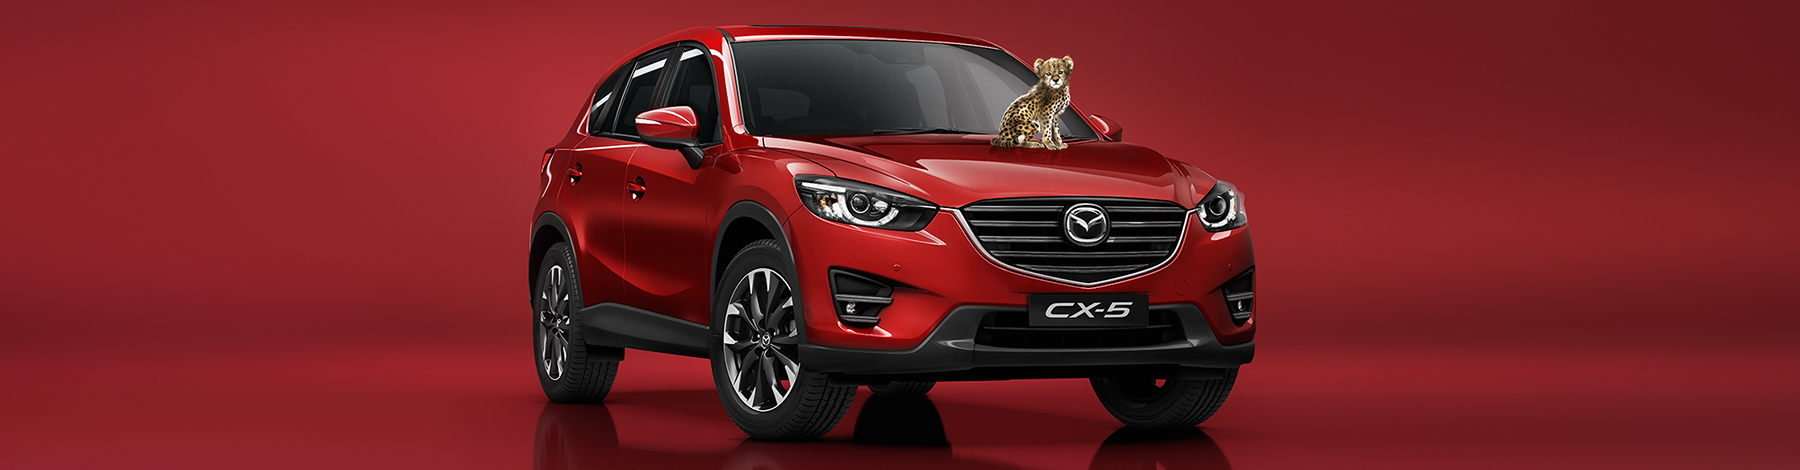 Search our Mazda CX-5 range